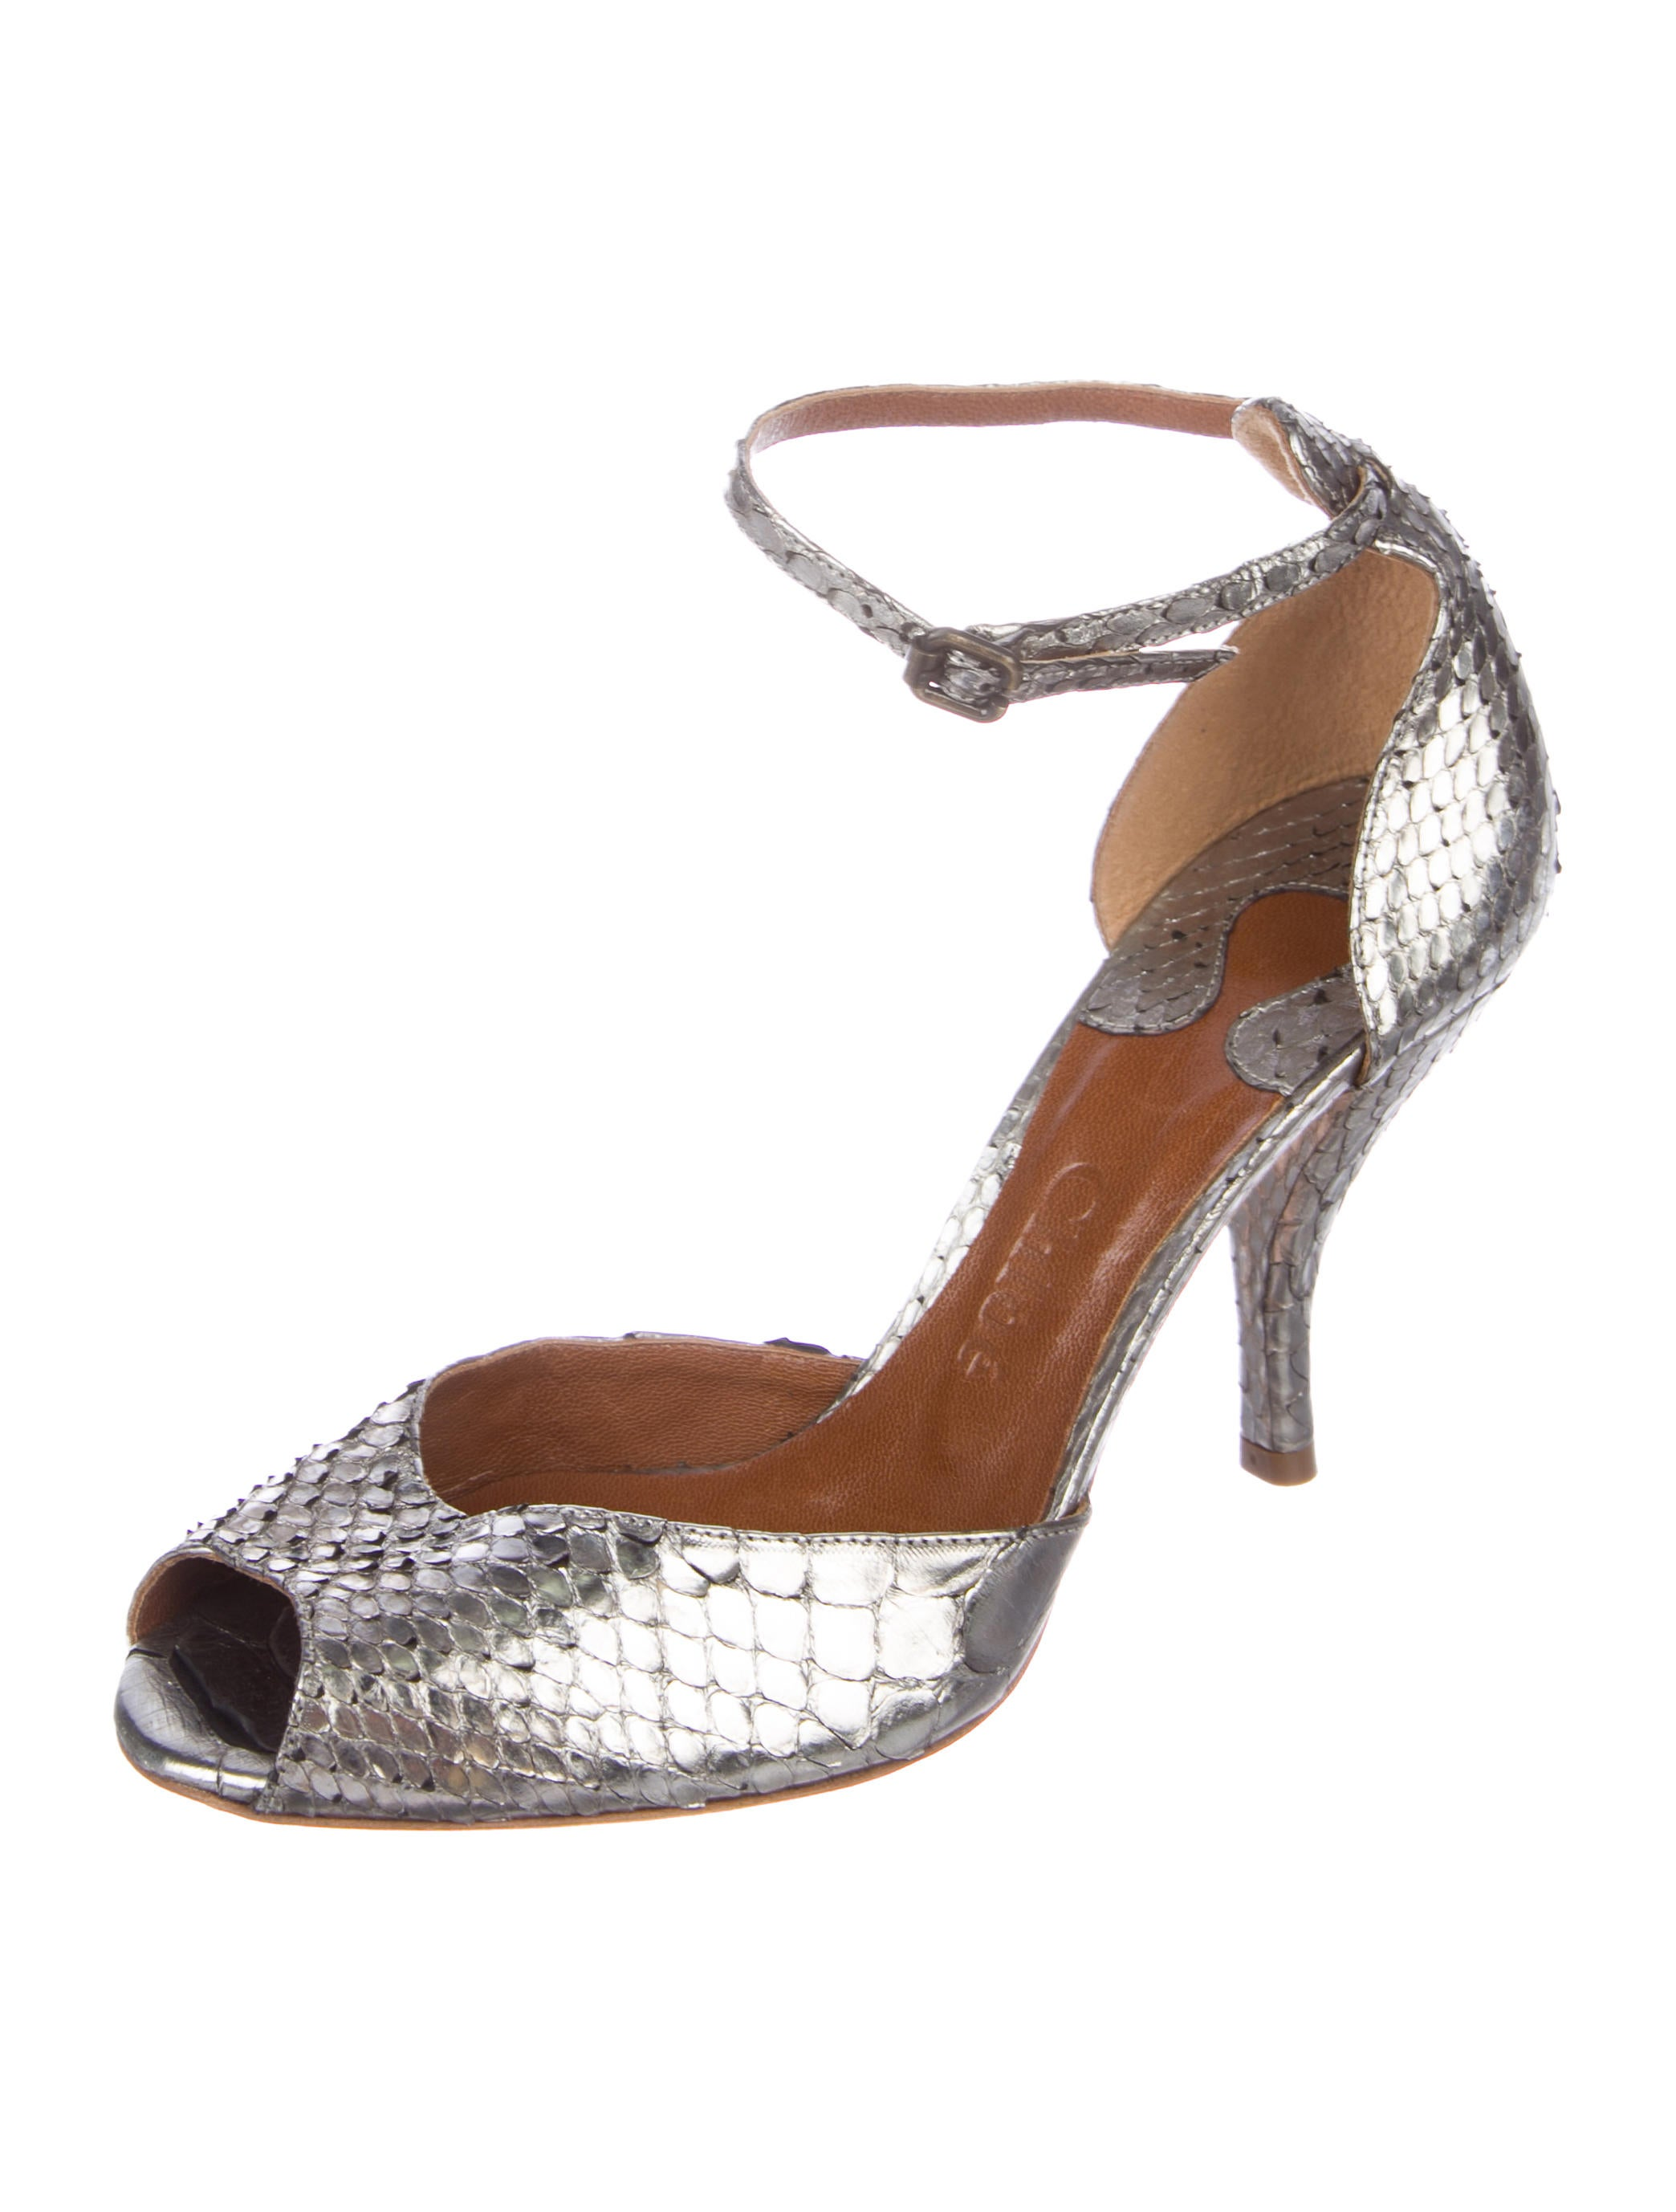 Chloé Metallic Python Sandals buy online with paypal cheap fashionable exclusive for sale how much for sale 3GSAAHnV